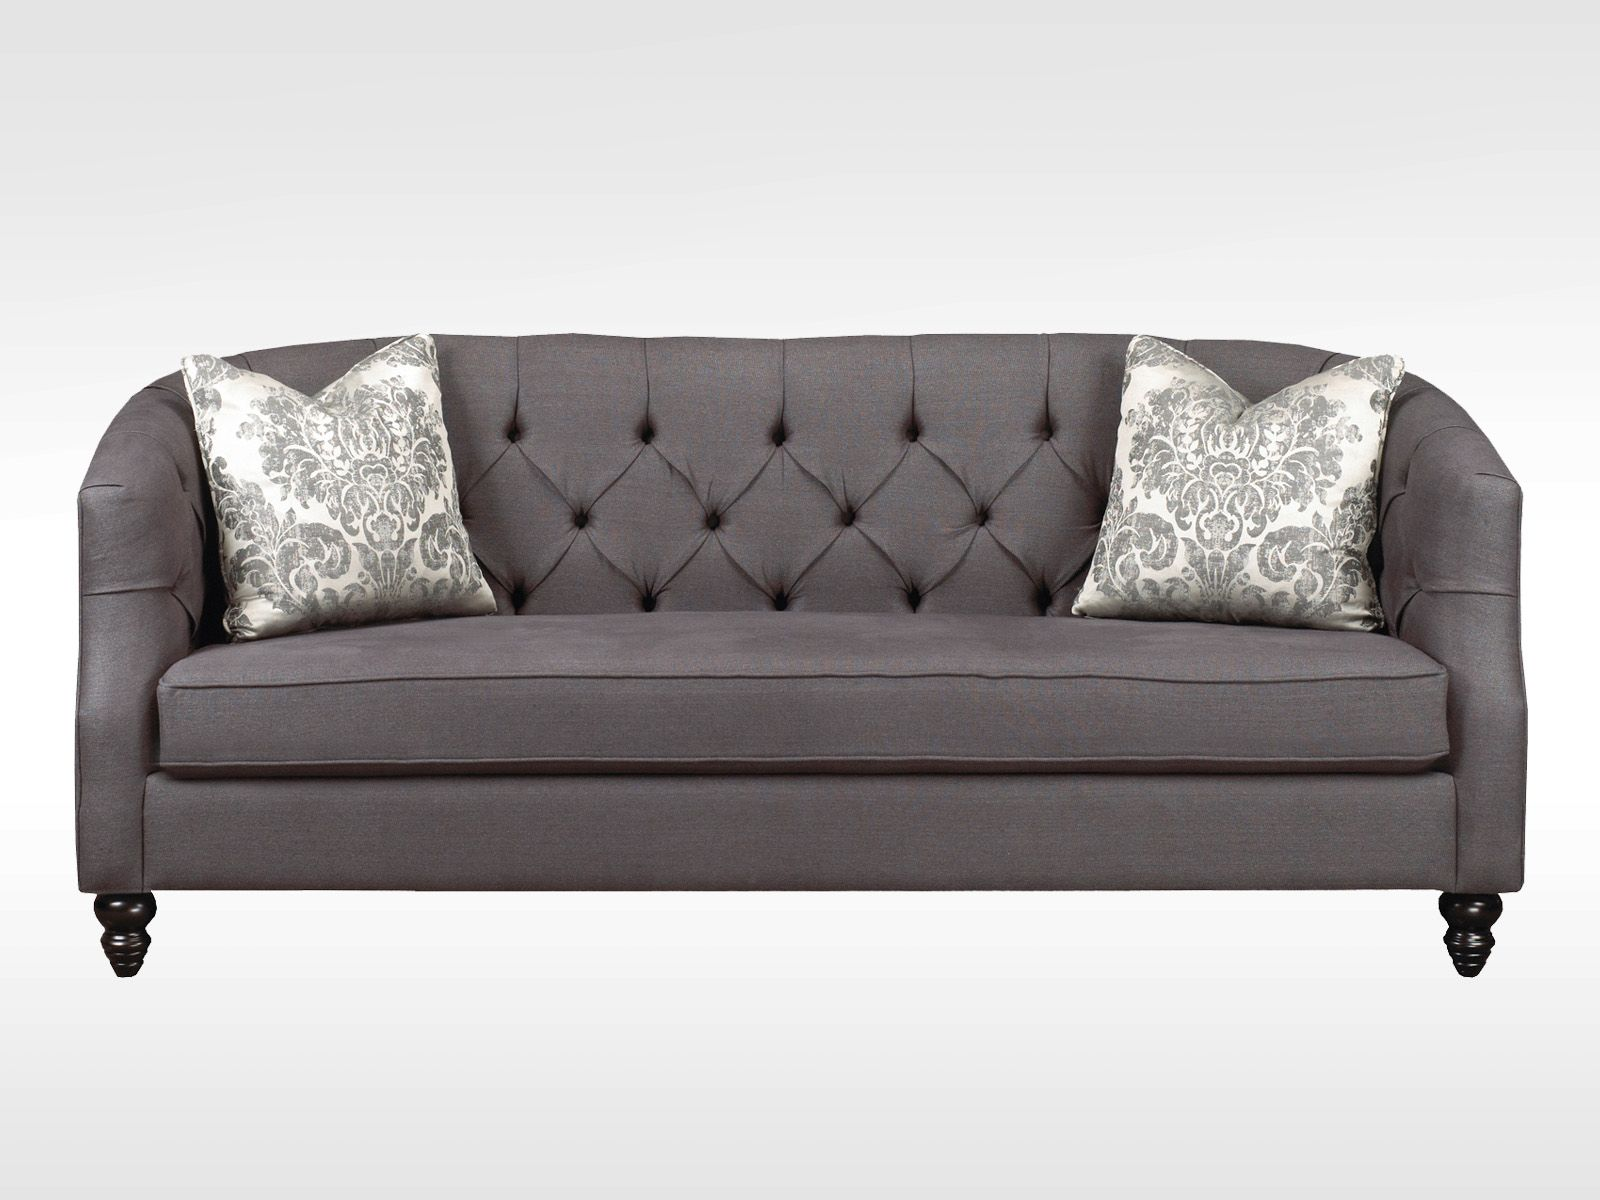 Daisy Brentwood Classics At Chattels Furniture Home Decor